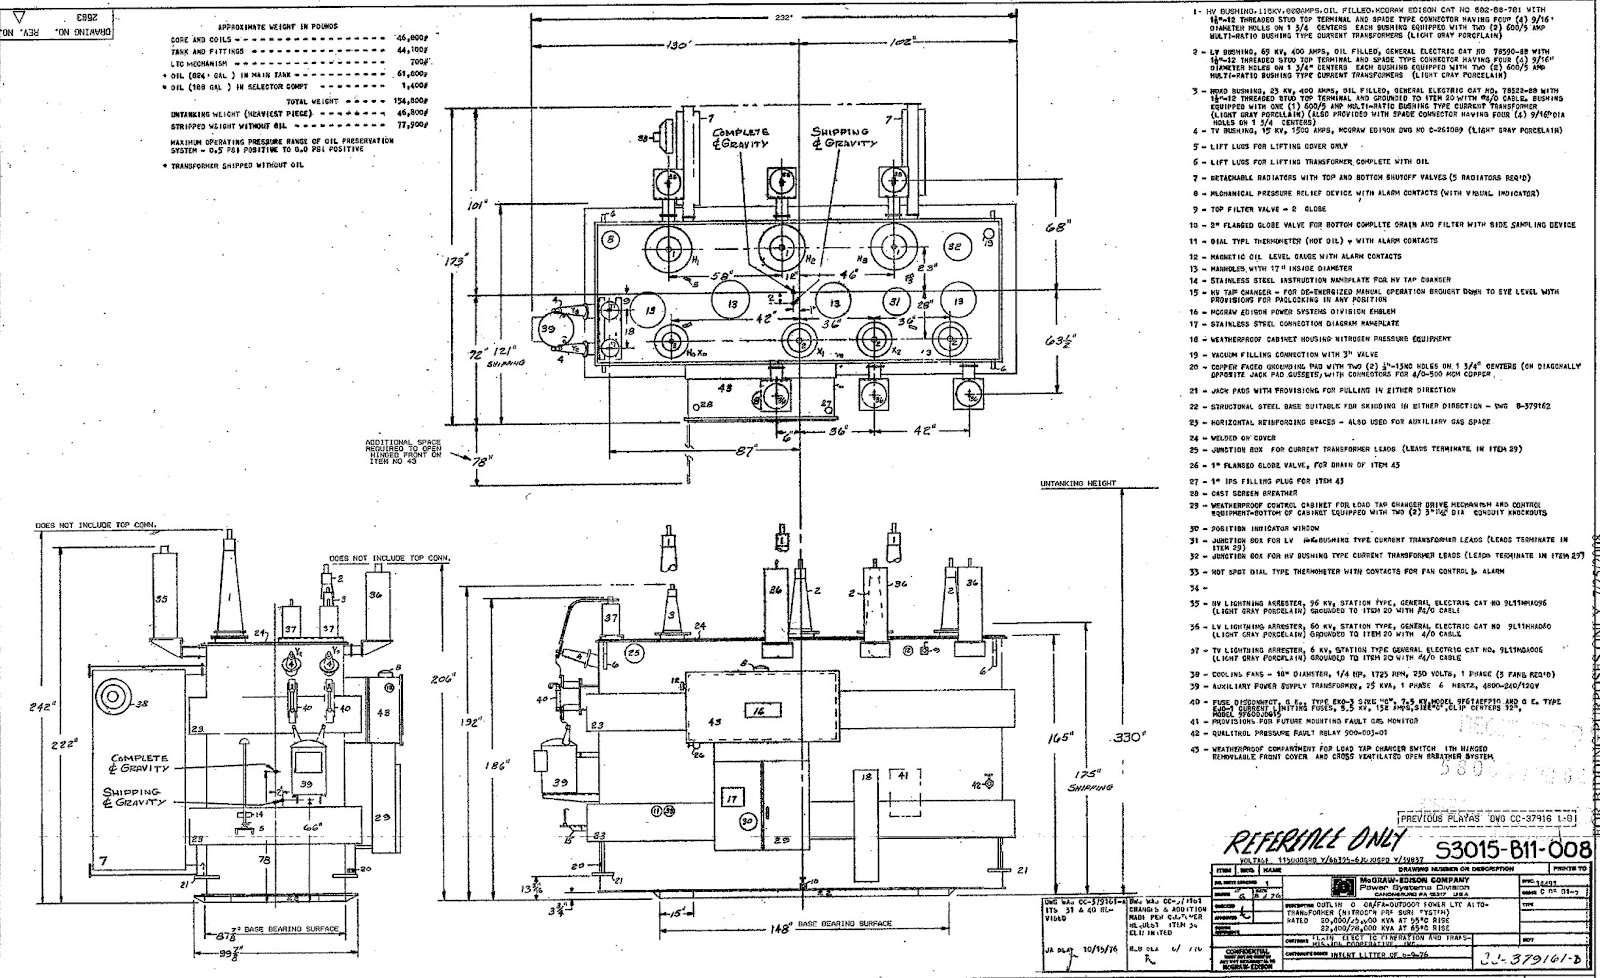 buck boost transformer wiring diagram Collection-In Acme Buck Boost Transformer Wiring Diagram Within Transformers Diagrams 1-a